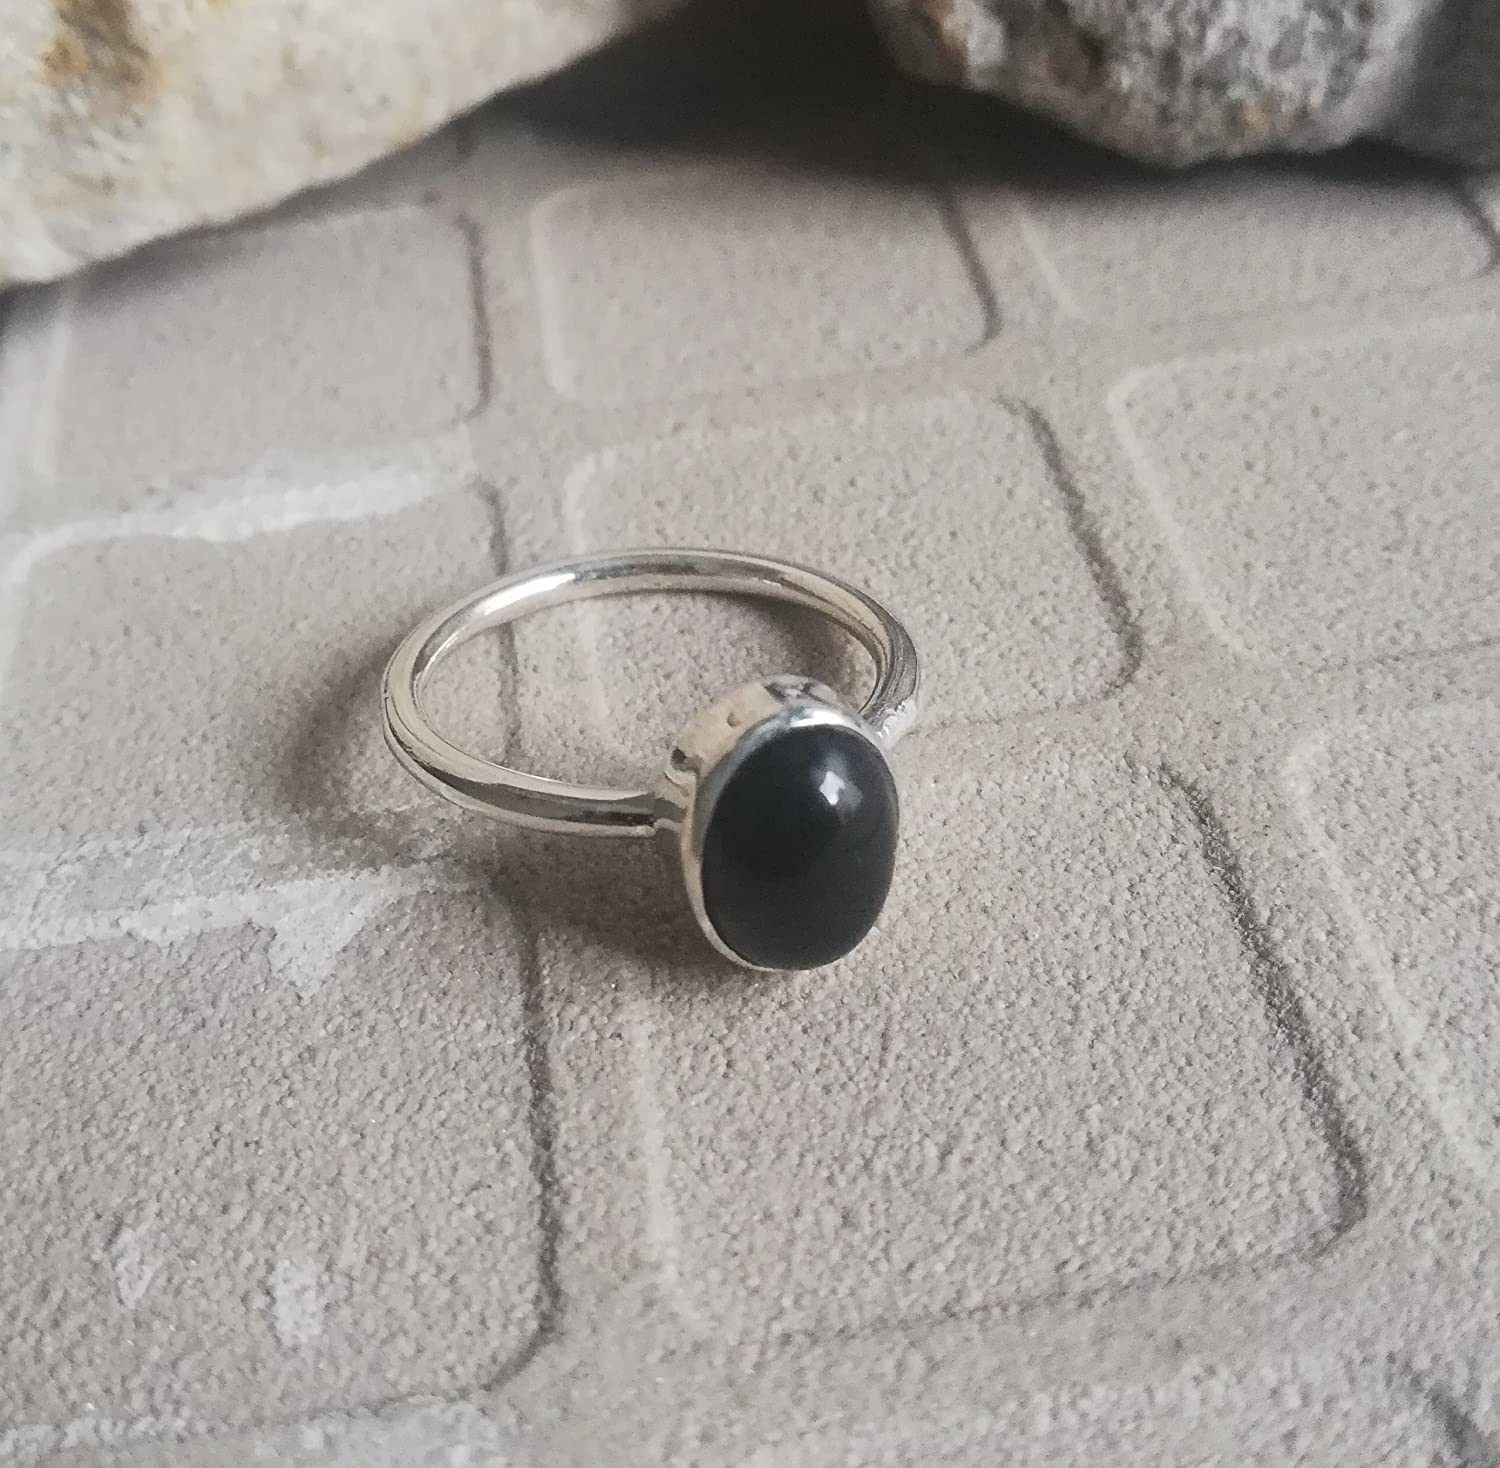 Black Onyx Ring, 925 Sterling Silver, Minimalist Ring, Stacking Ring, Solitaire Ring, Trending Ring, Excellent Ring, Statement Ring, Gypsy Ring, Religious Ring, Bezel Ring, Great Gift,US All Size Ring